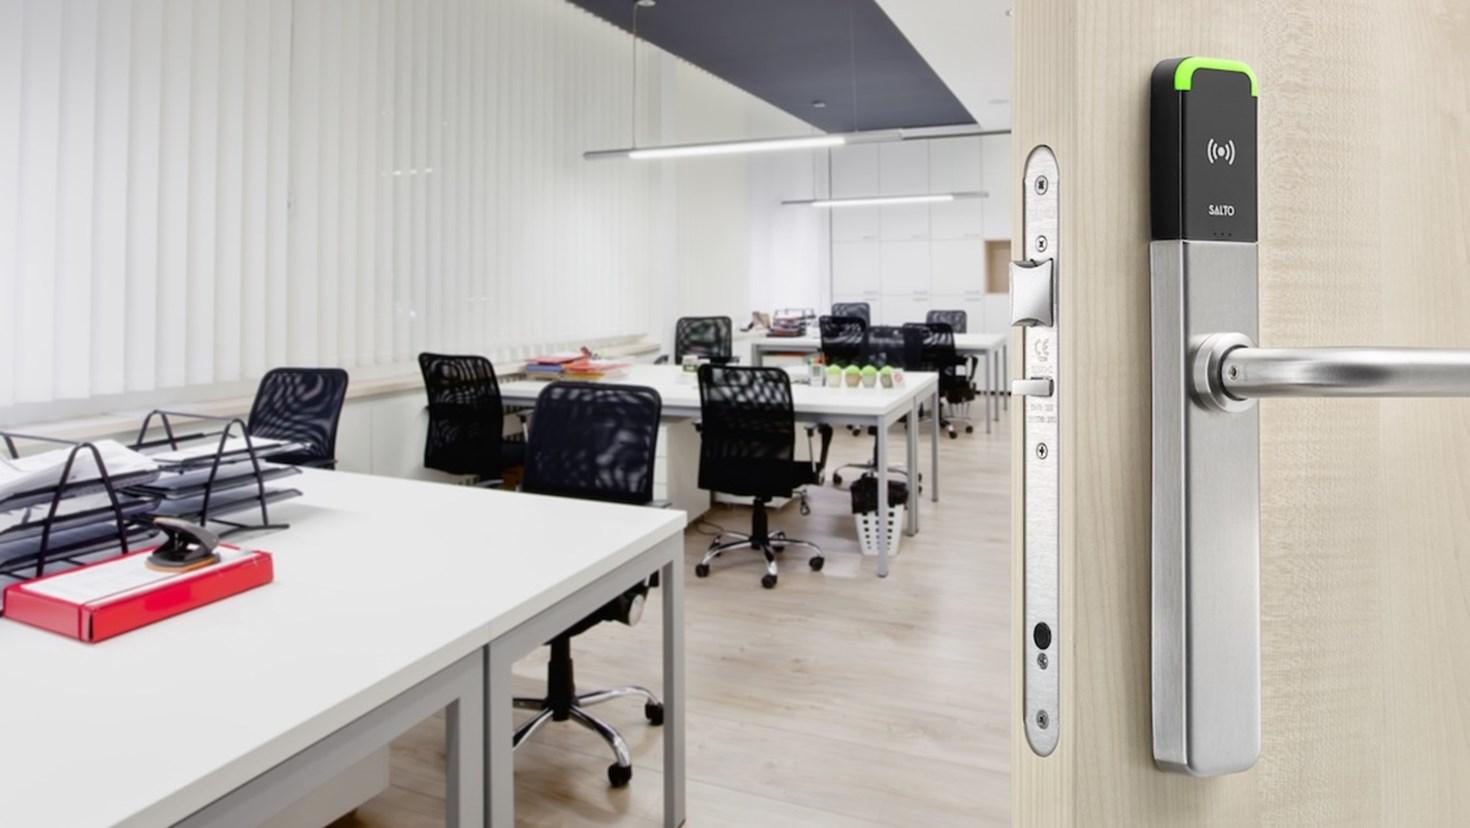 How can the integration between SALTO KS and Nexudus benefit your coworking space?